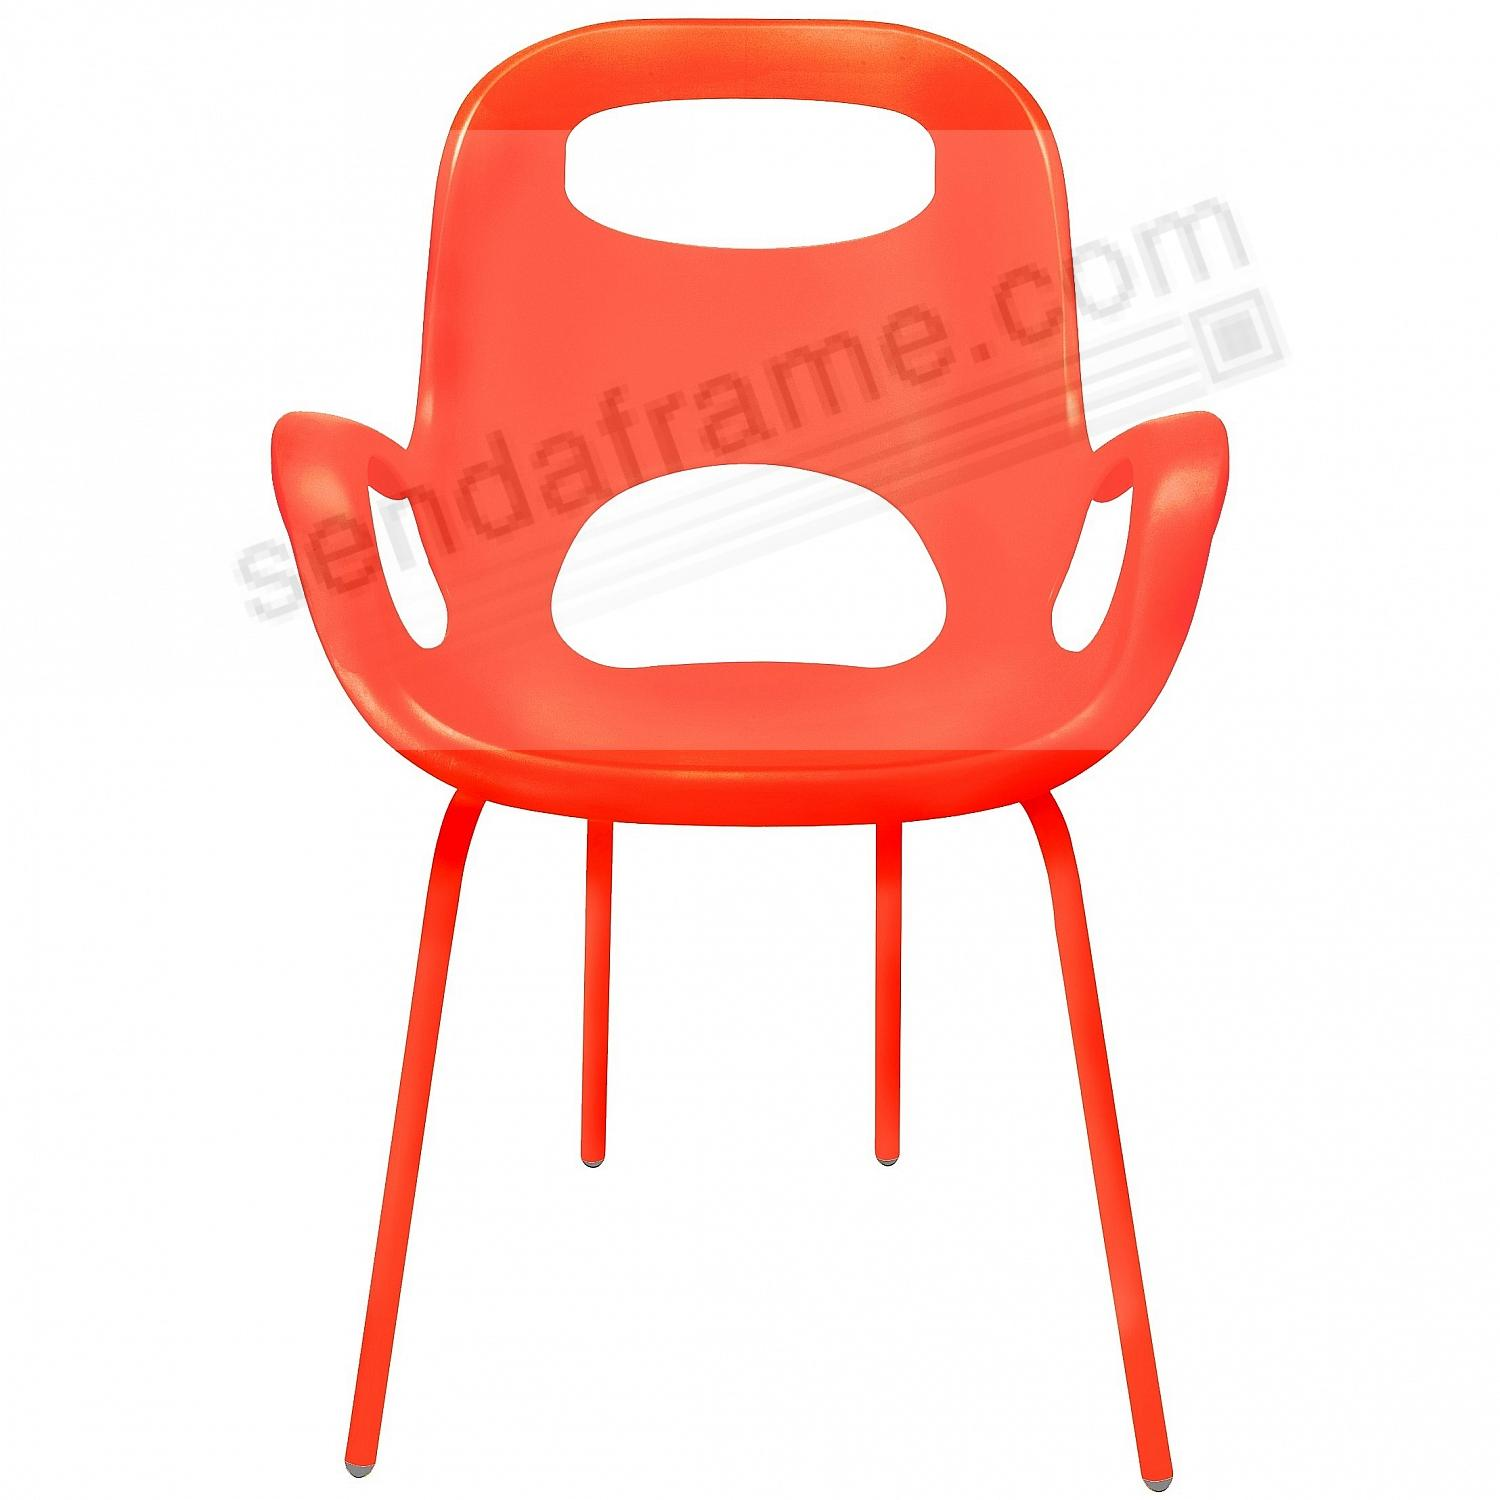 The Original OH CHAIR - ORANGE- by Umbra+®